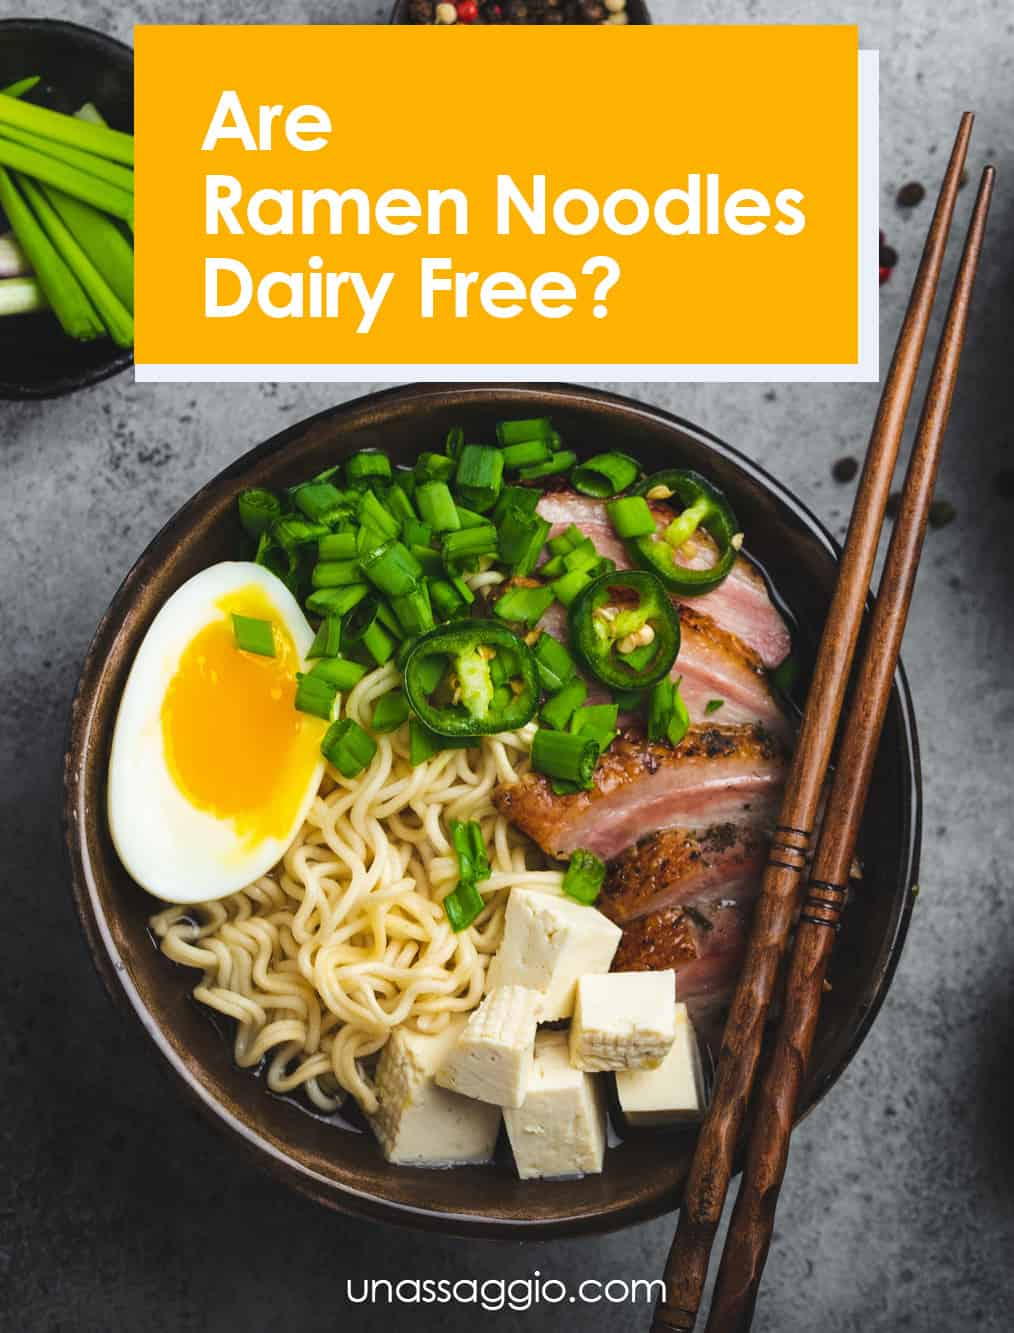 Are Ramen Noodles Dairy Free?